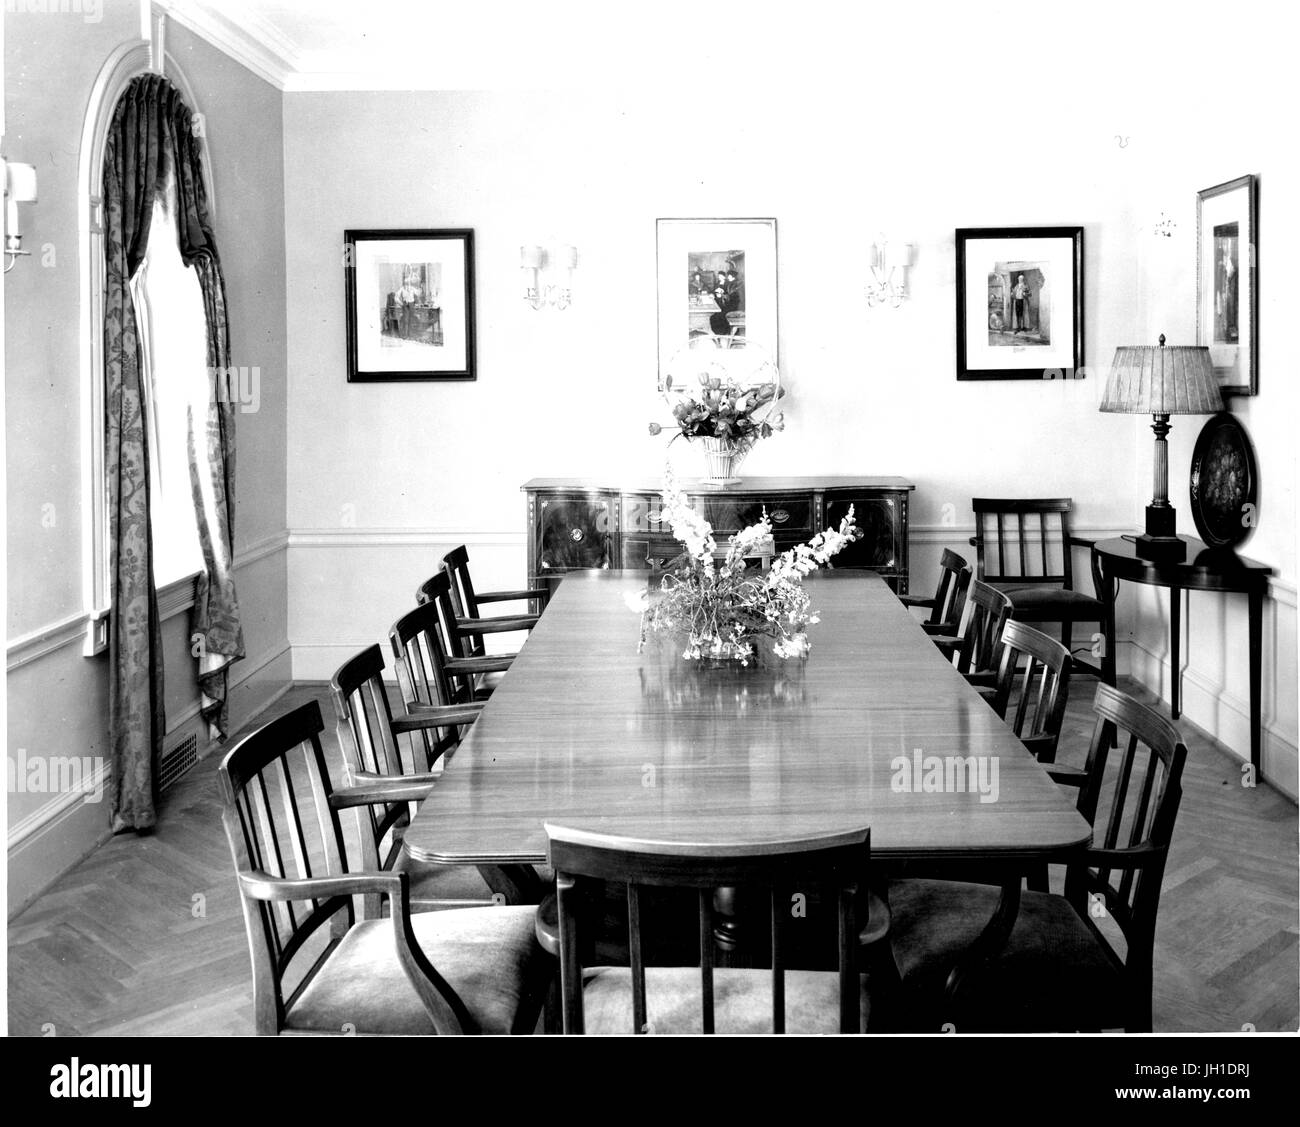 Dining Room Of The Johns Hopkins Club Featuring A Large Table Chairs Cabinet Framed Photographs And Sconces In Baltimore Maryland 1930